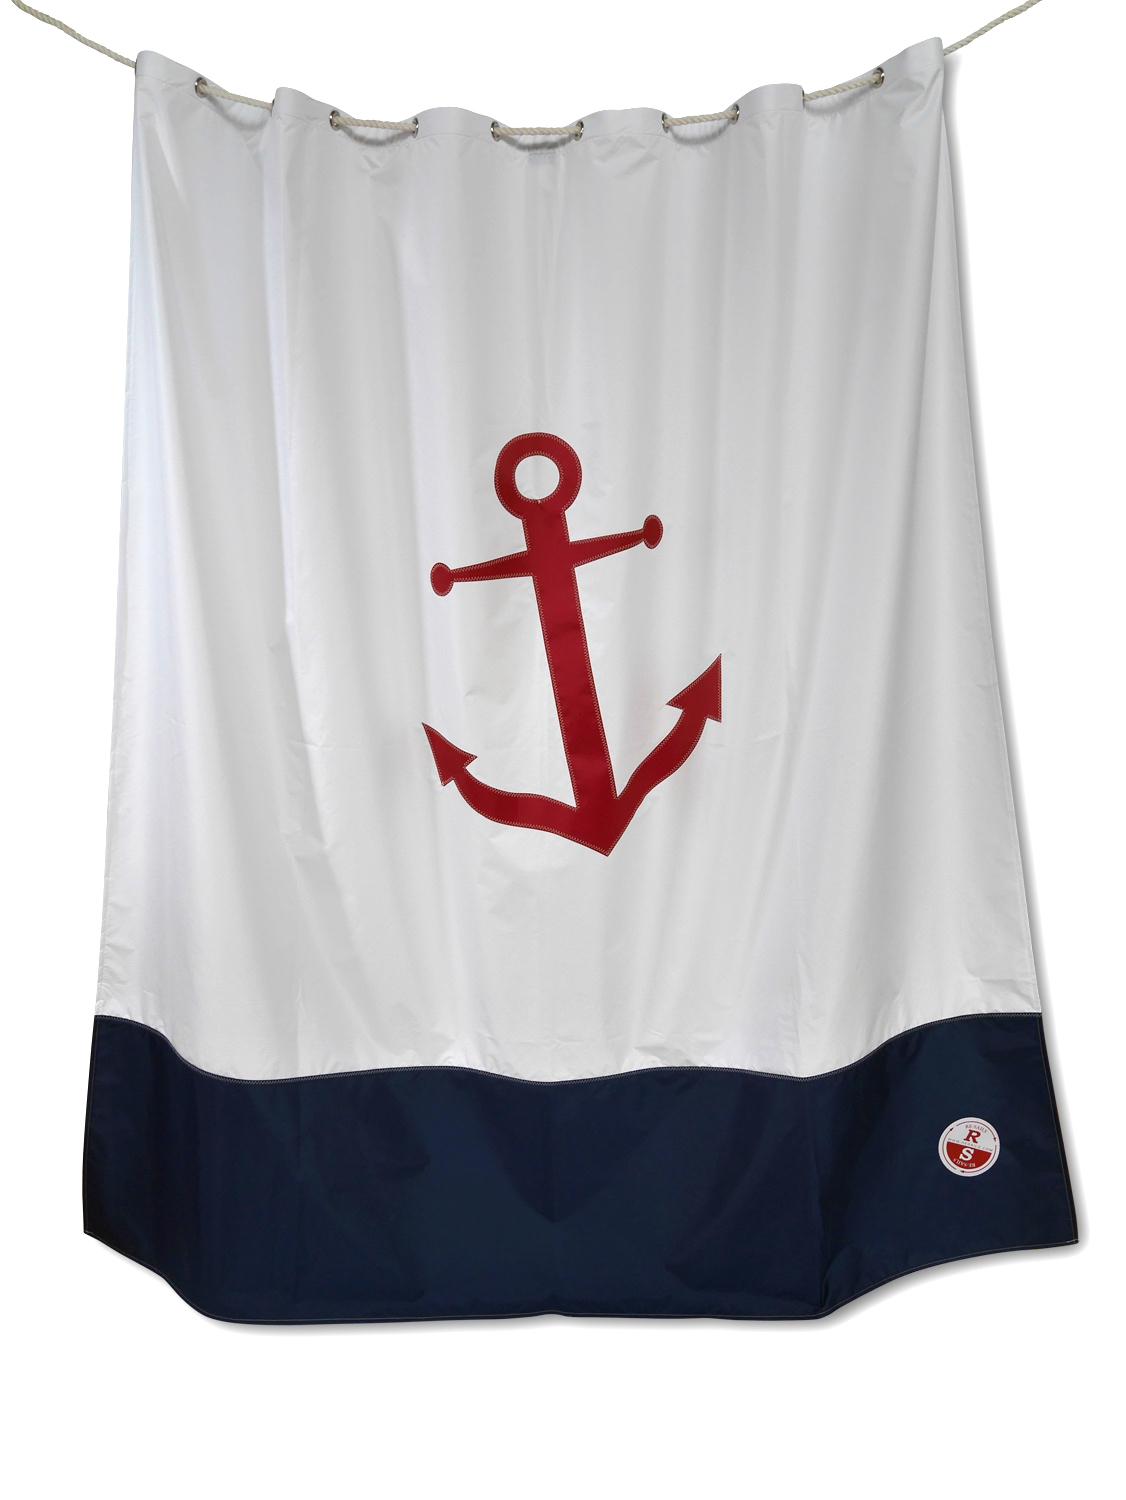 rs shower curtain